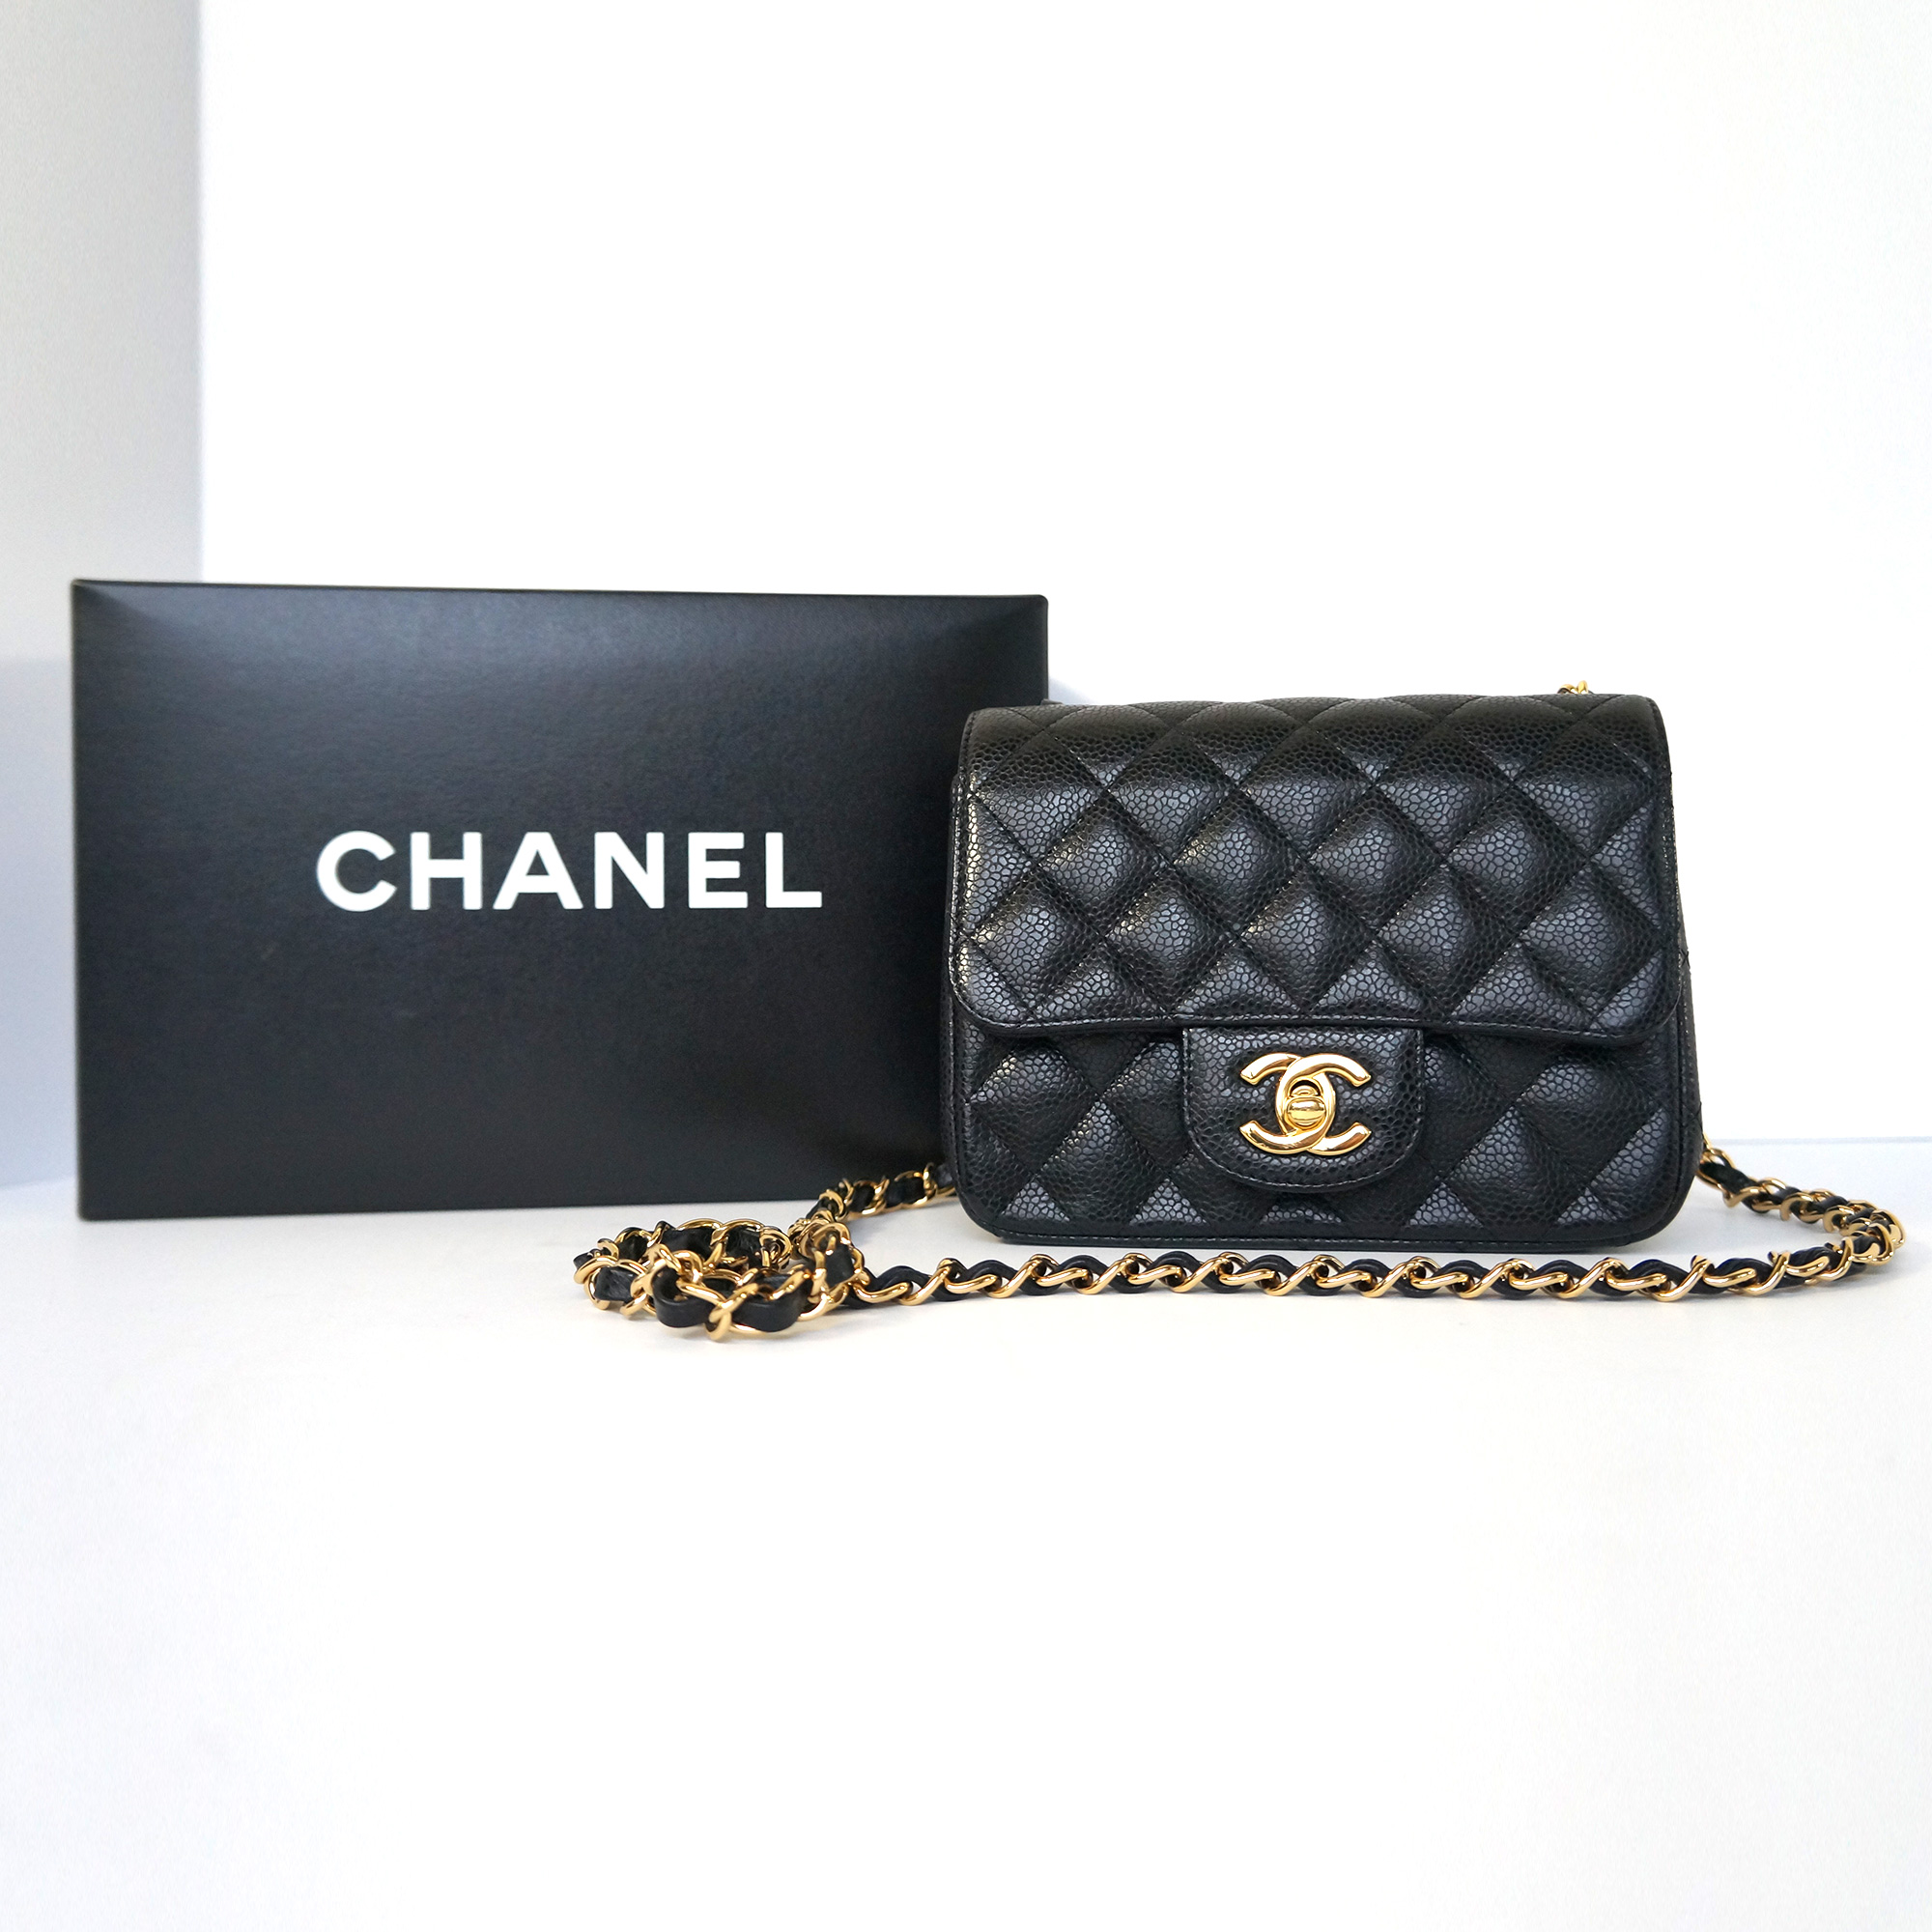 2cb69288ea49 Chanel Classic Square Mini Flap Bag Black Caviar Leather Gold Hardware